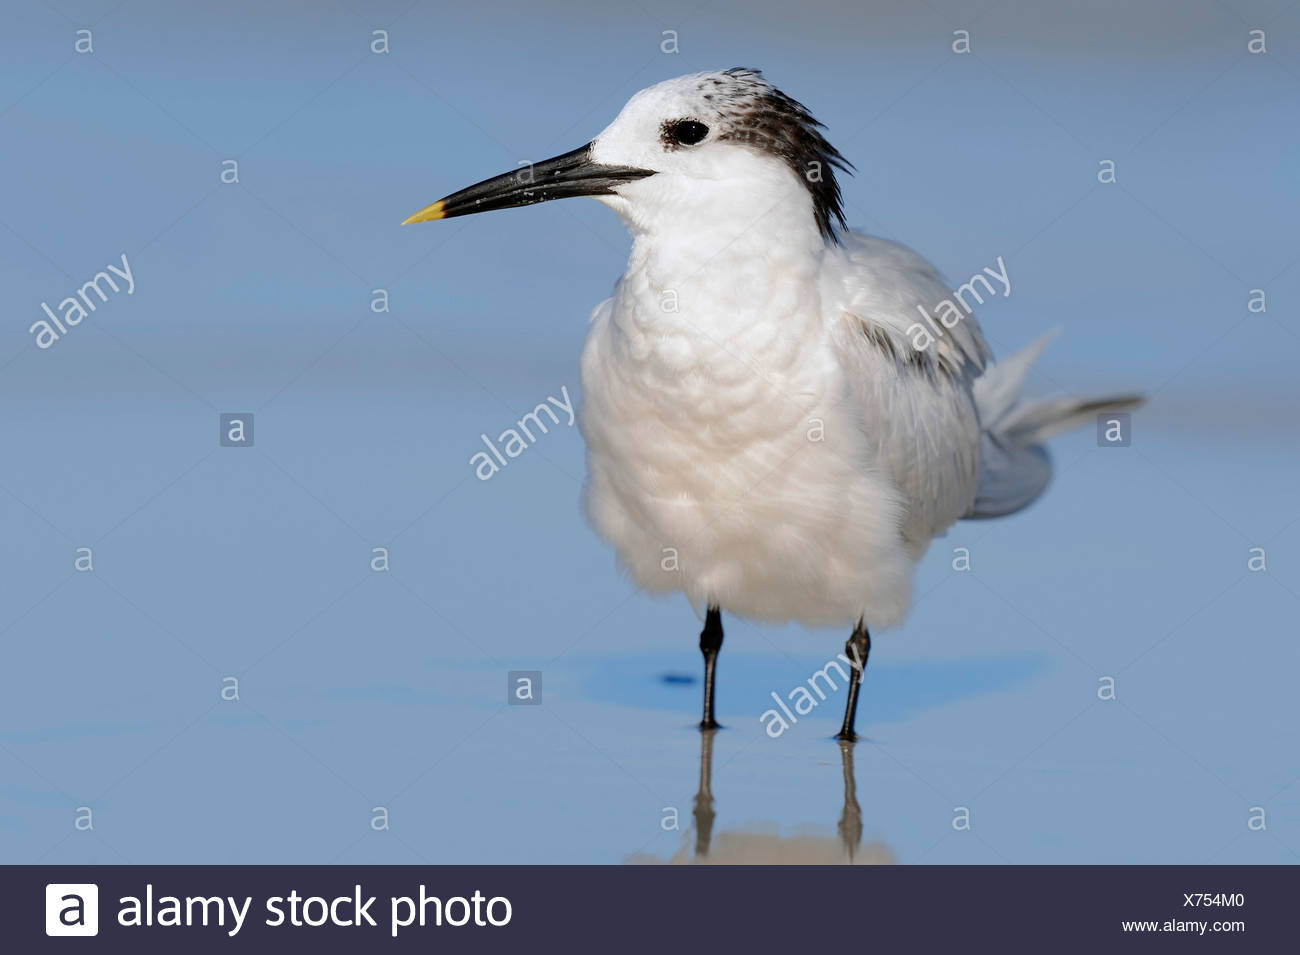 Sandwich Tern (Sterna sandvicensis, Thalasseus sandvicensis) in winter plumage, Florida, United States Stock Photo